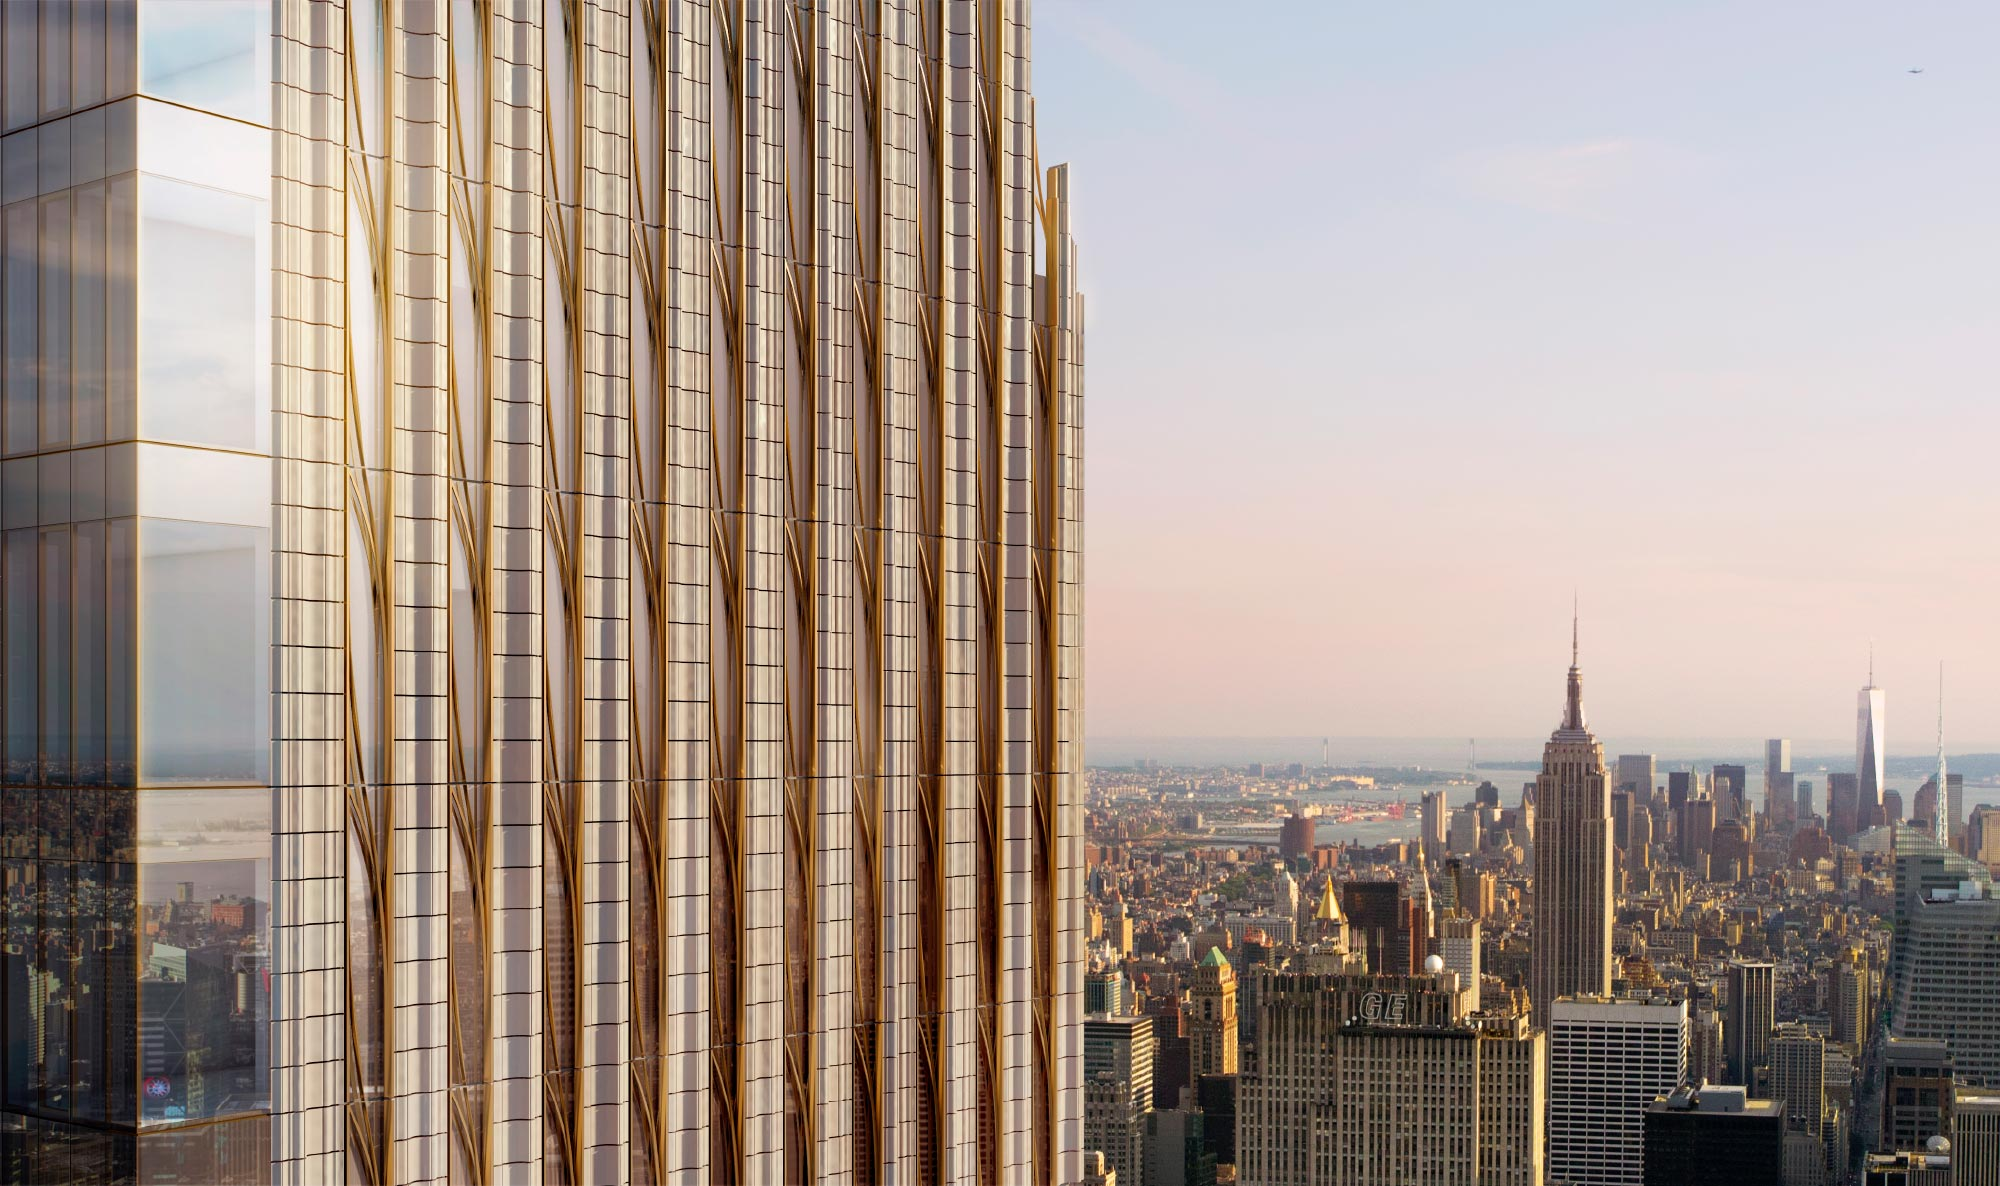 111 W 57th St - How can we use lighting design to give life to a new feminine and ephemeral presence within the otherwise masculine skyline of Manhattan?